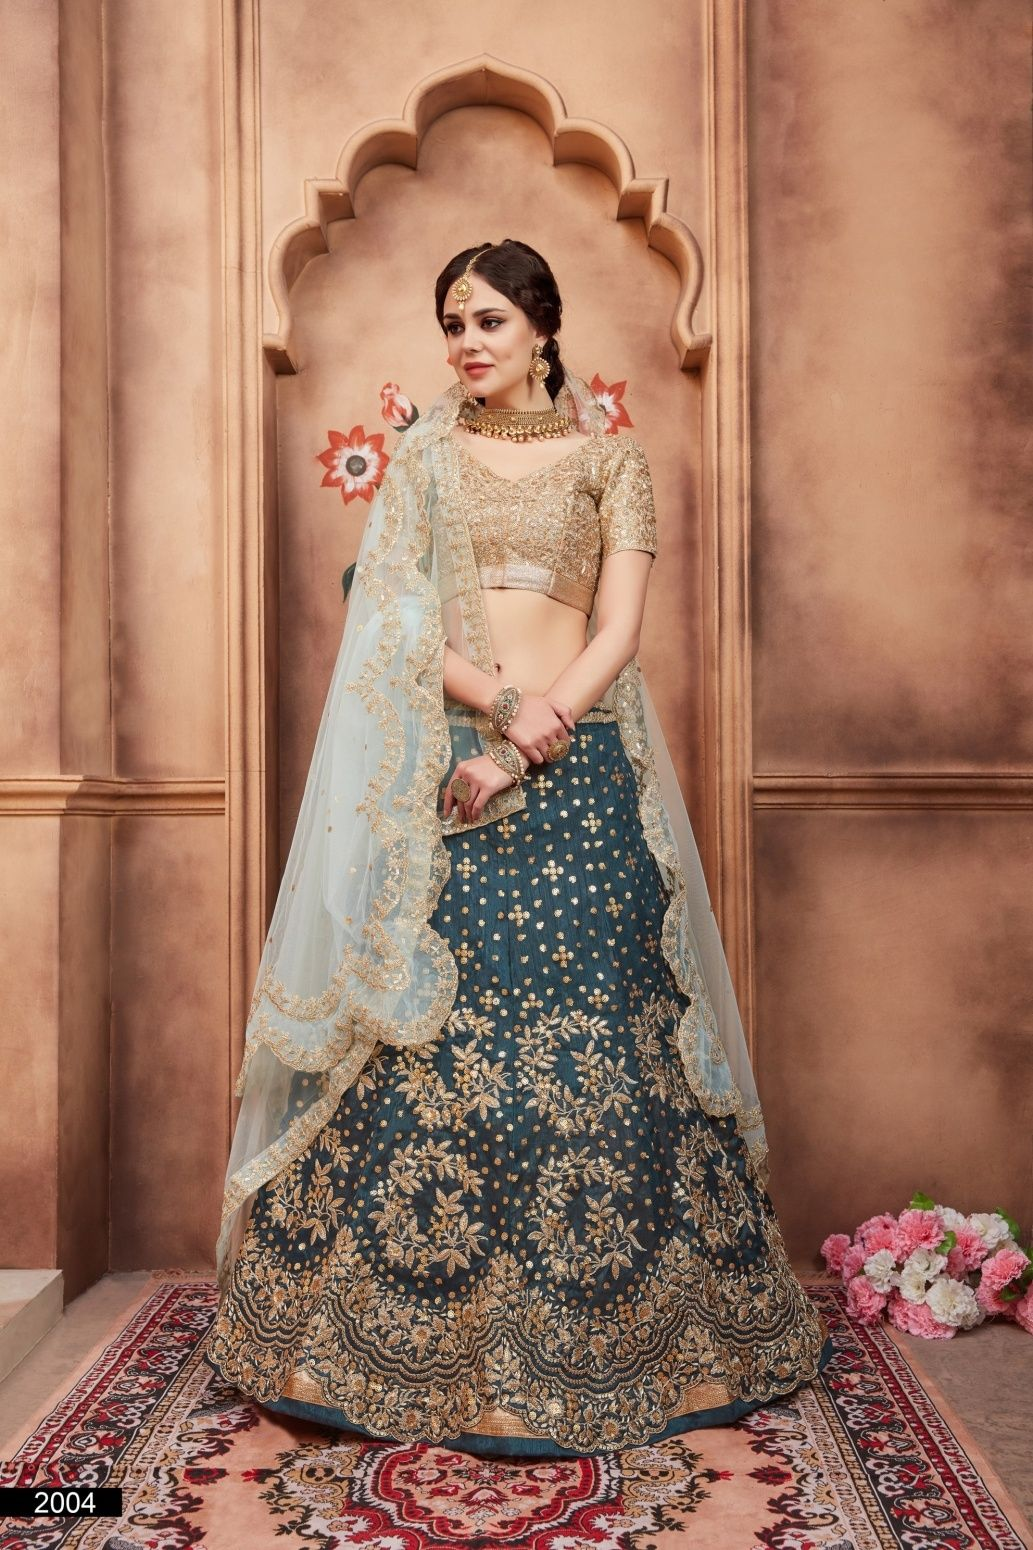 2aaa293564 Buy Party/Ceremonies Charming Teal Colour Lehenga Choli Online at Low  prices in India on Winsant, India fastest online shopping website.